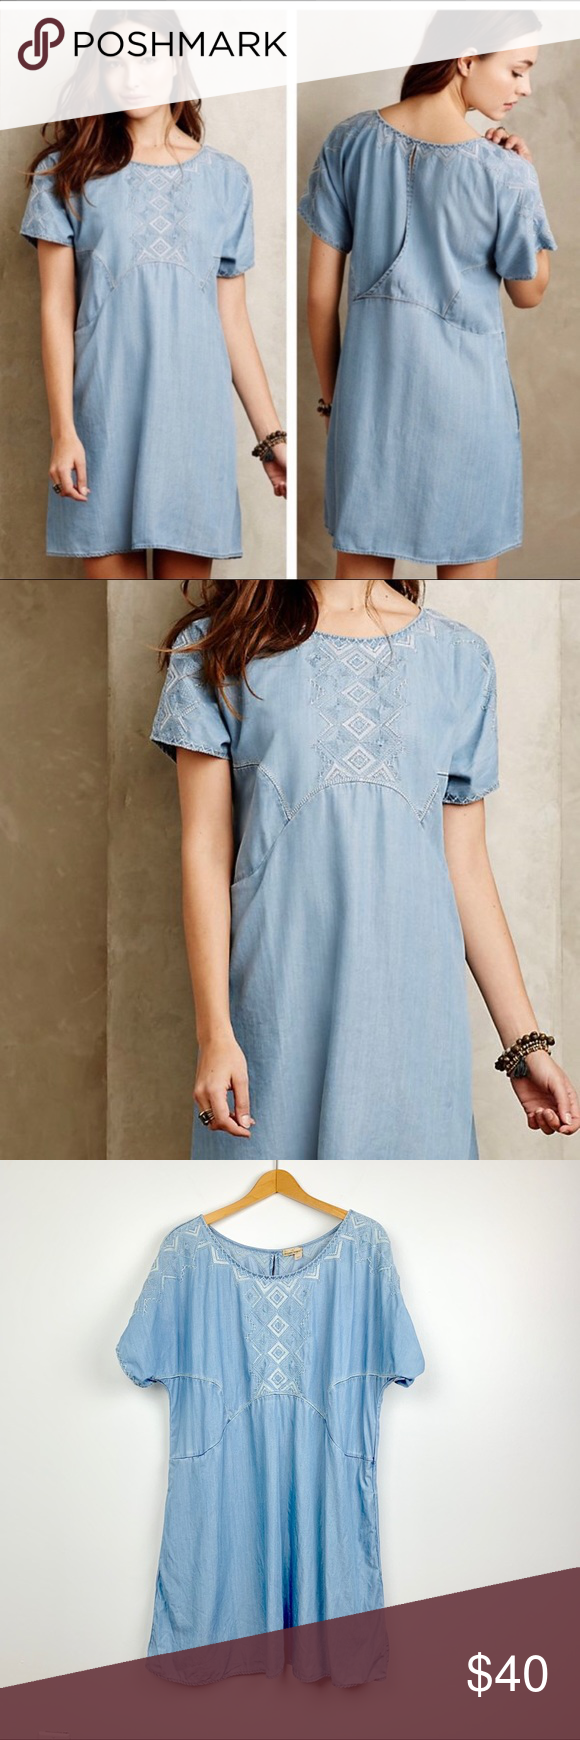 c2d264befdc8 Holding Horses Sands Chambray embroidered dress L Holding Horses Sands  Chambray embroidered dress L Cute comfy chambray shift dress with white  embroidery ...